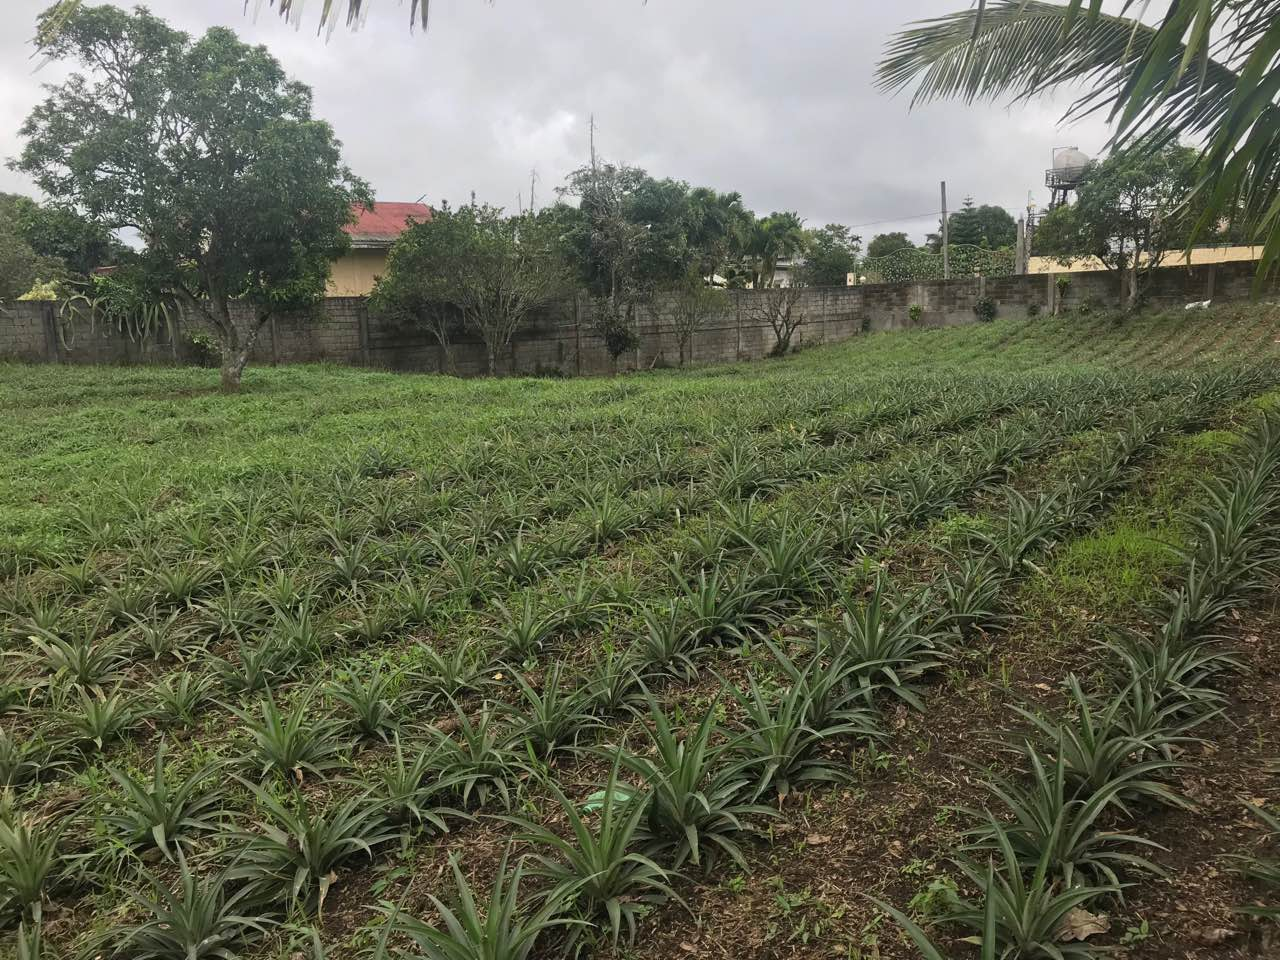 Agricultural Lot For Sale, Silang, Cavite 7